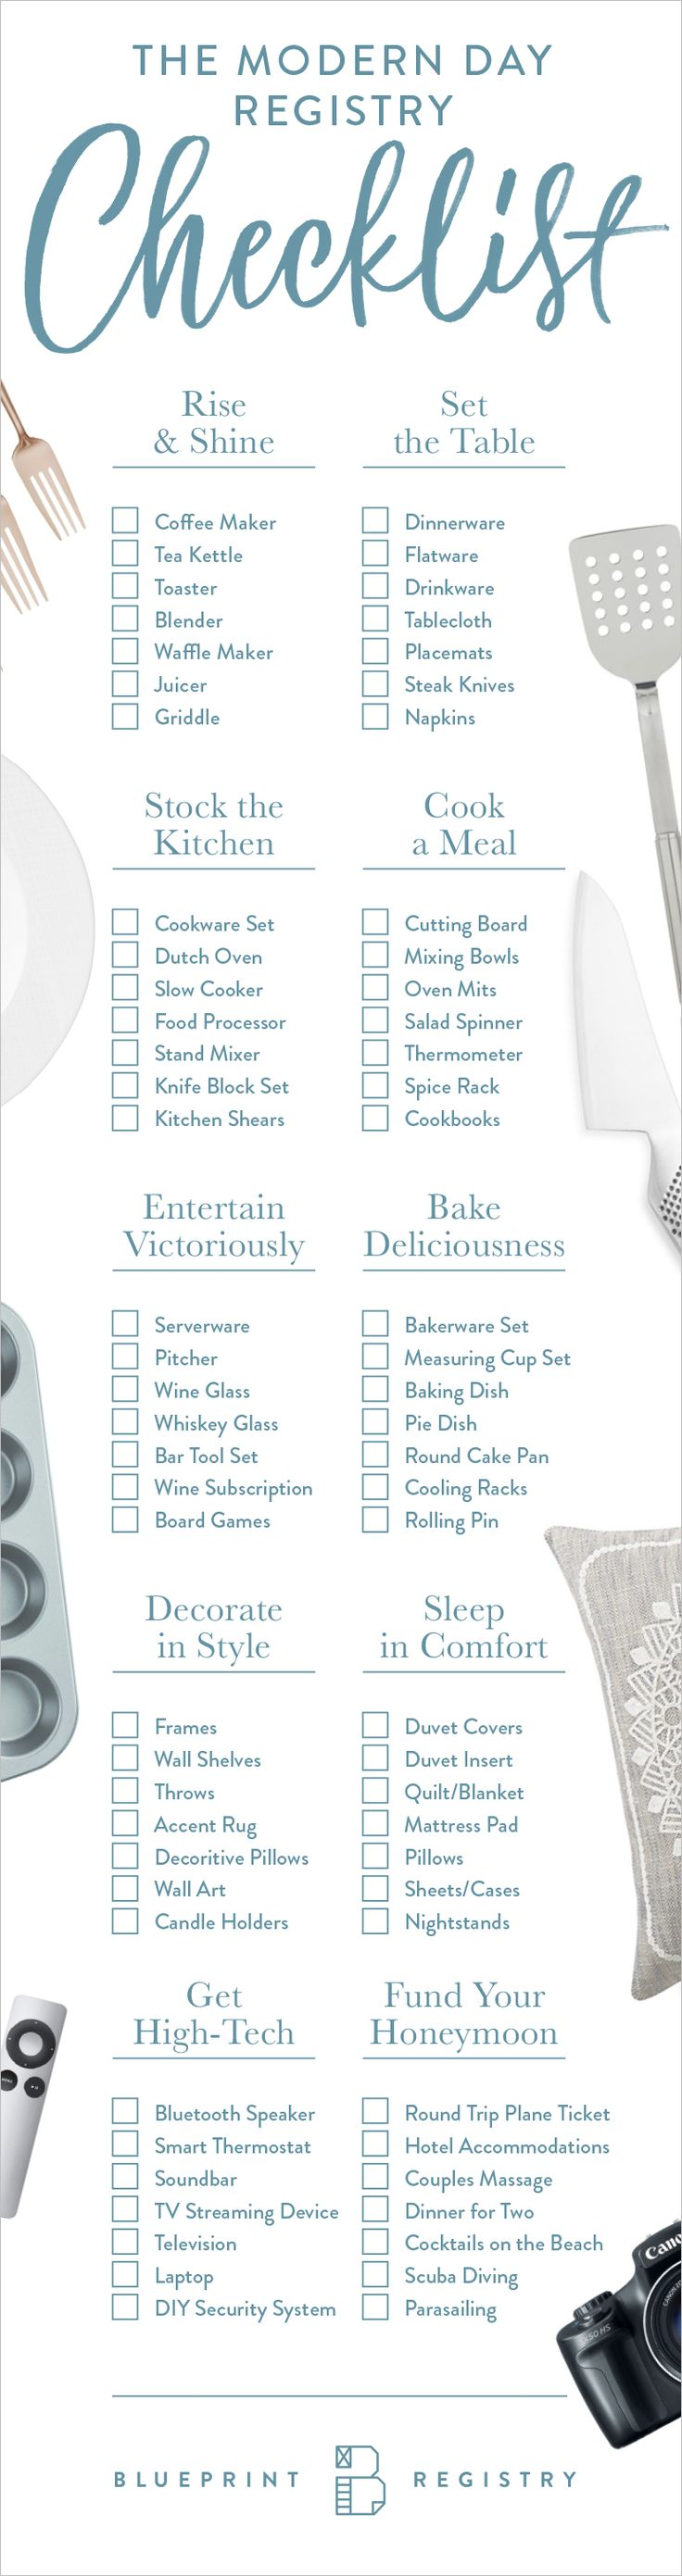 printable bridal registry list%0A A modern registry checklist for the modern day couple  Blueprint Registry  is an innovative wedding registry that allows you to register for  experiences